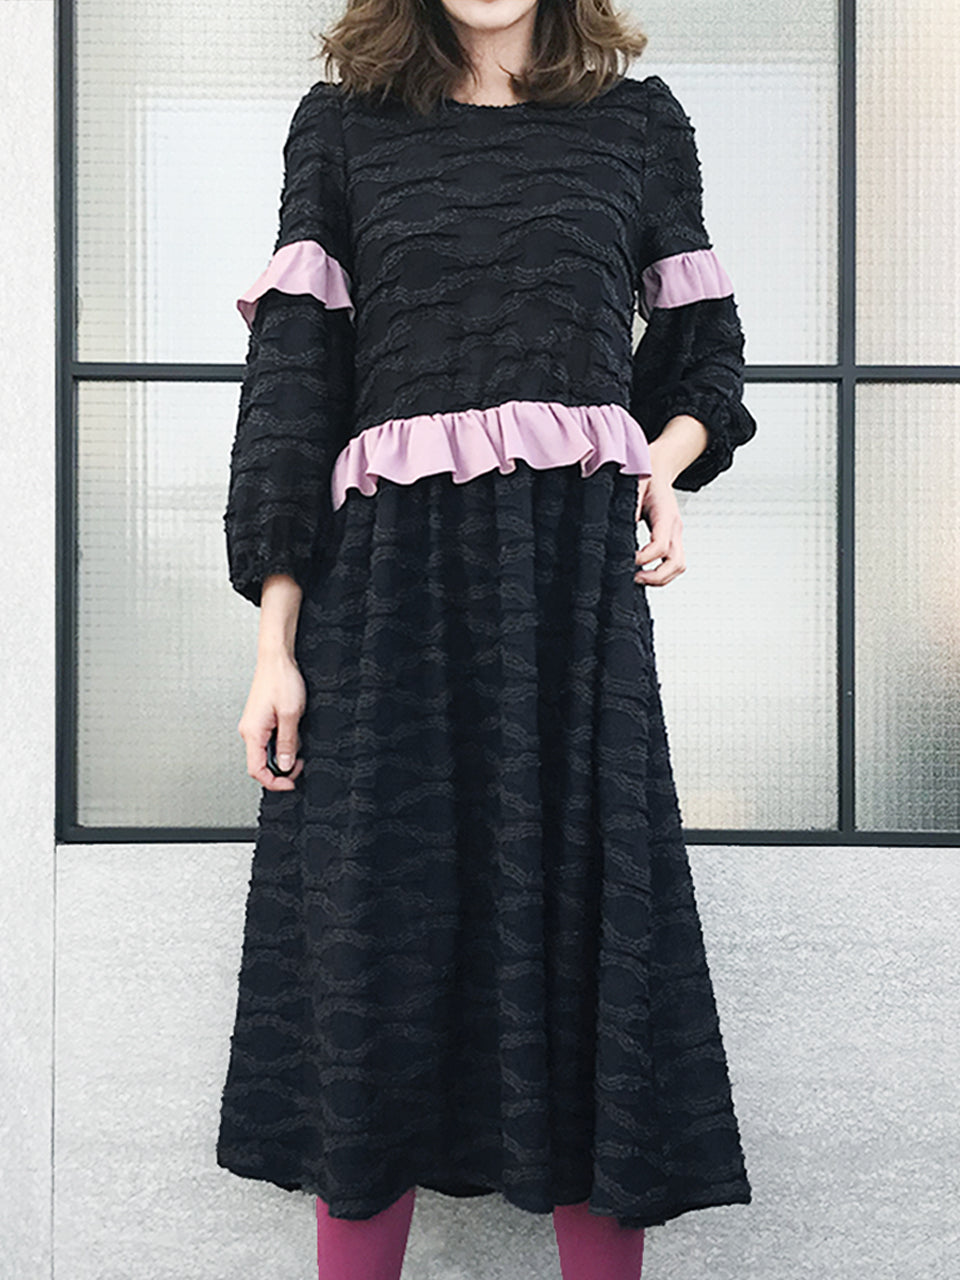 Further Sale! Textured Knit Blousy Sleeves Ruffle Dress